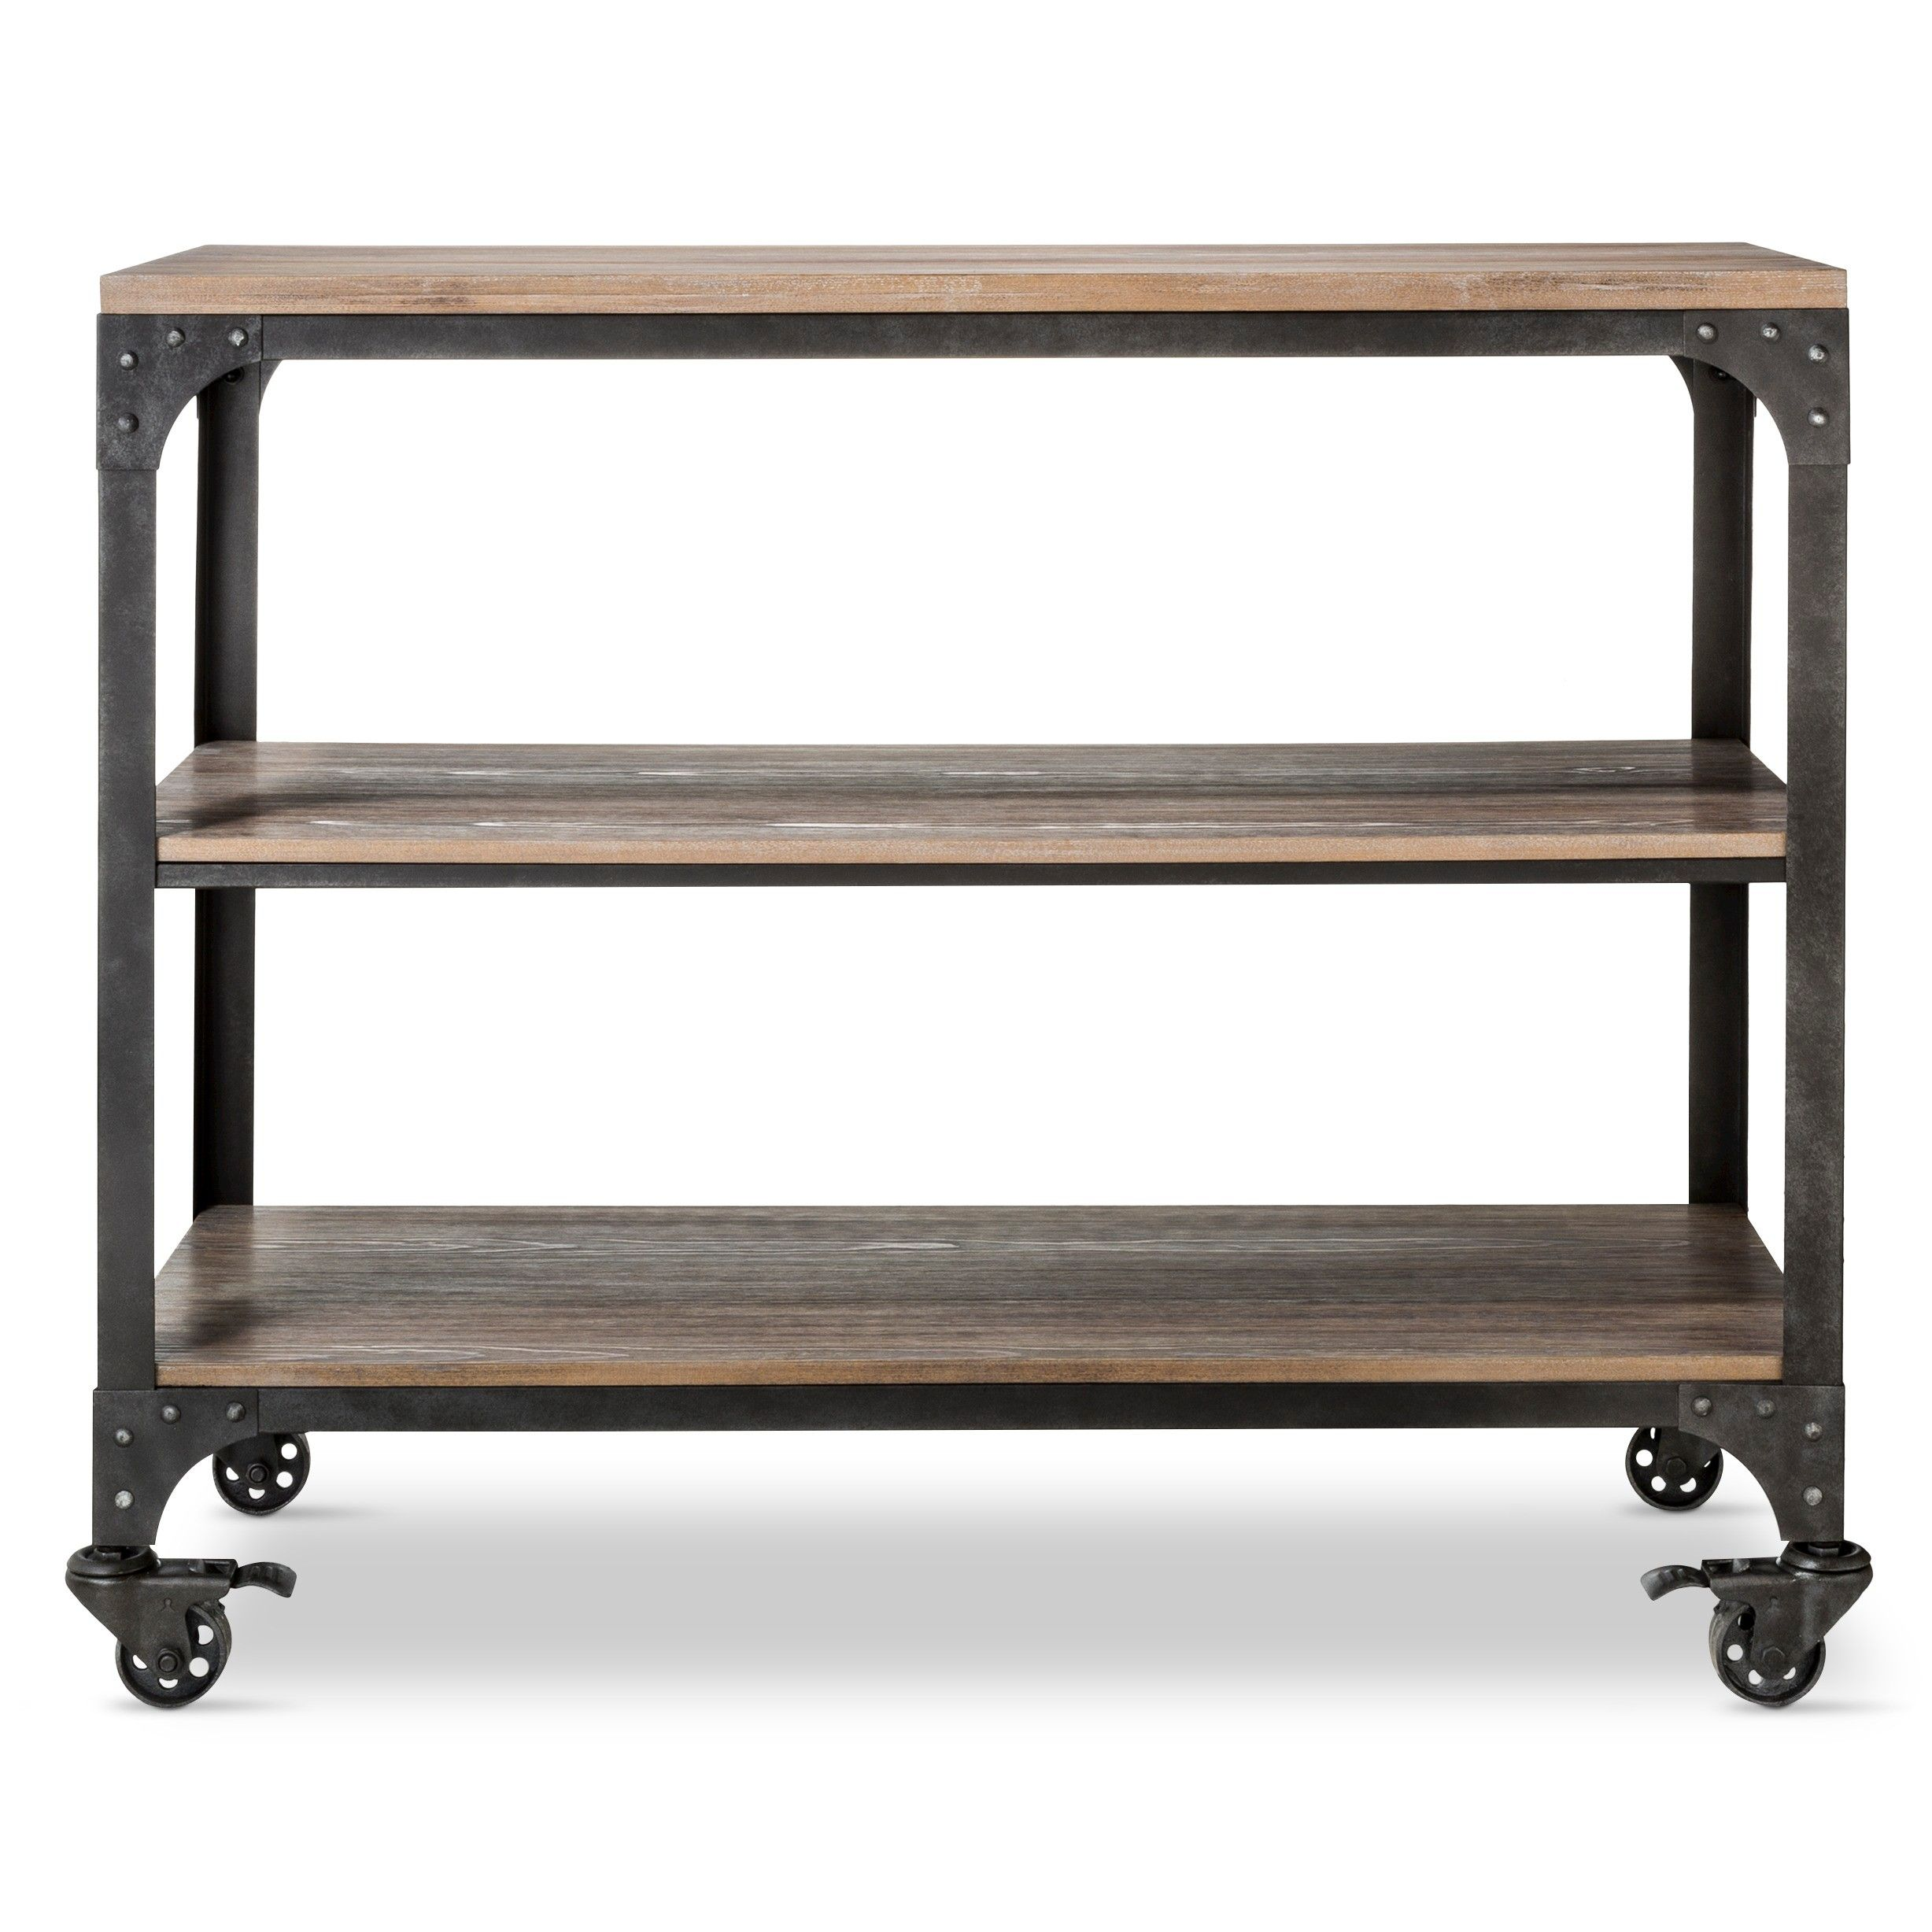 Bring a vintage vibe to your books with a Franklin 3-Shelf Horizontal Bookcase from The Industrial Shop. Designed to look like a vintage find, these bookshelves have a solid pine veneer that's been worn and weathered through a 9-step finishing and burning process to achieve a unique, distressed look. The end finish has a weathered gray look with undertones of a medium brown. The industrial bookcase also boasts a solid steel frame with exposed rivet details and 4 locking swivel casters.